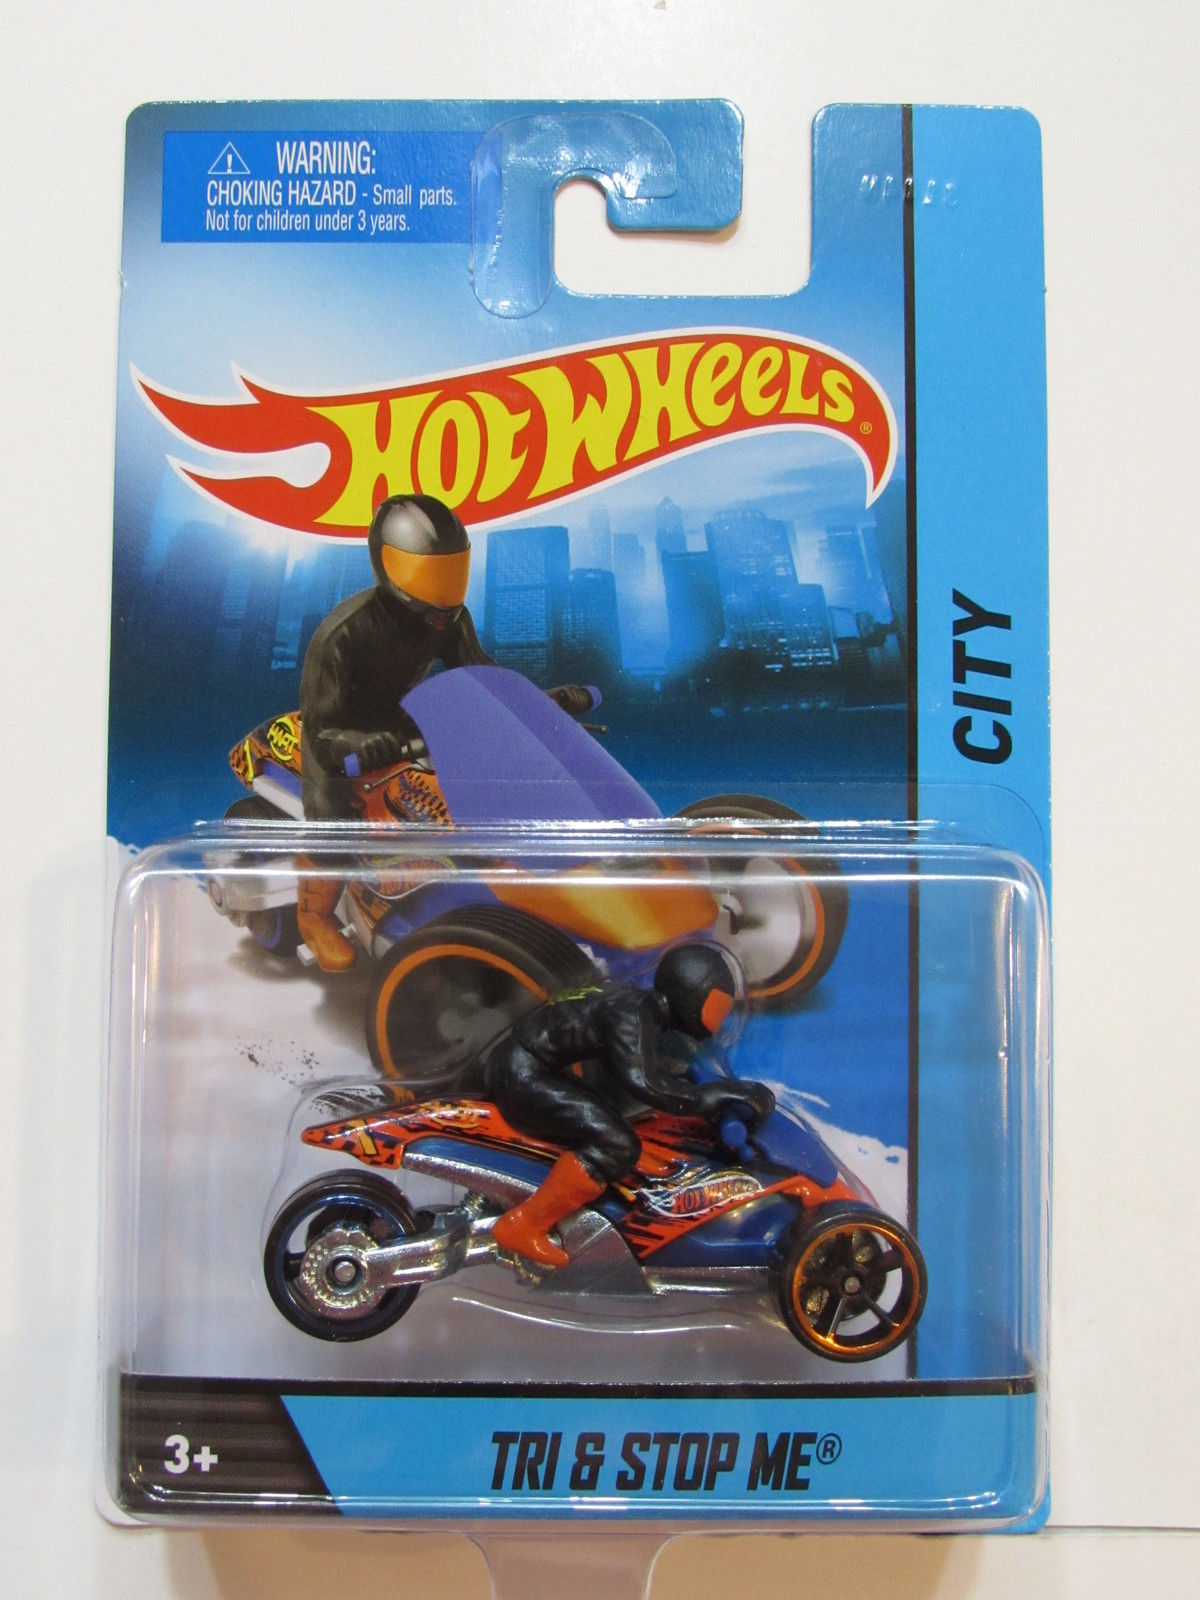 HOT WHEELS 2014 CITY TRI & STOP ME 1:64 SCALE